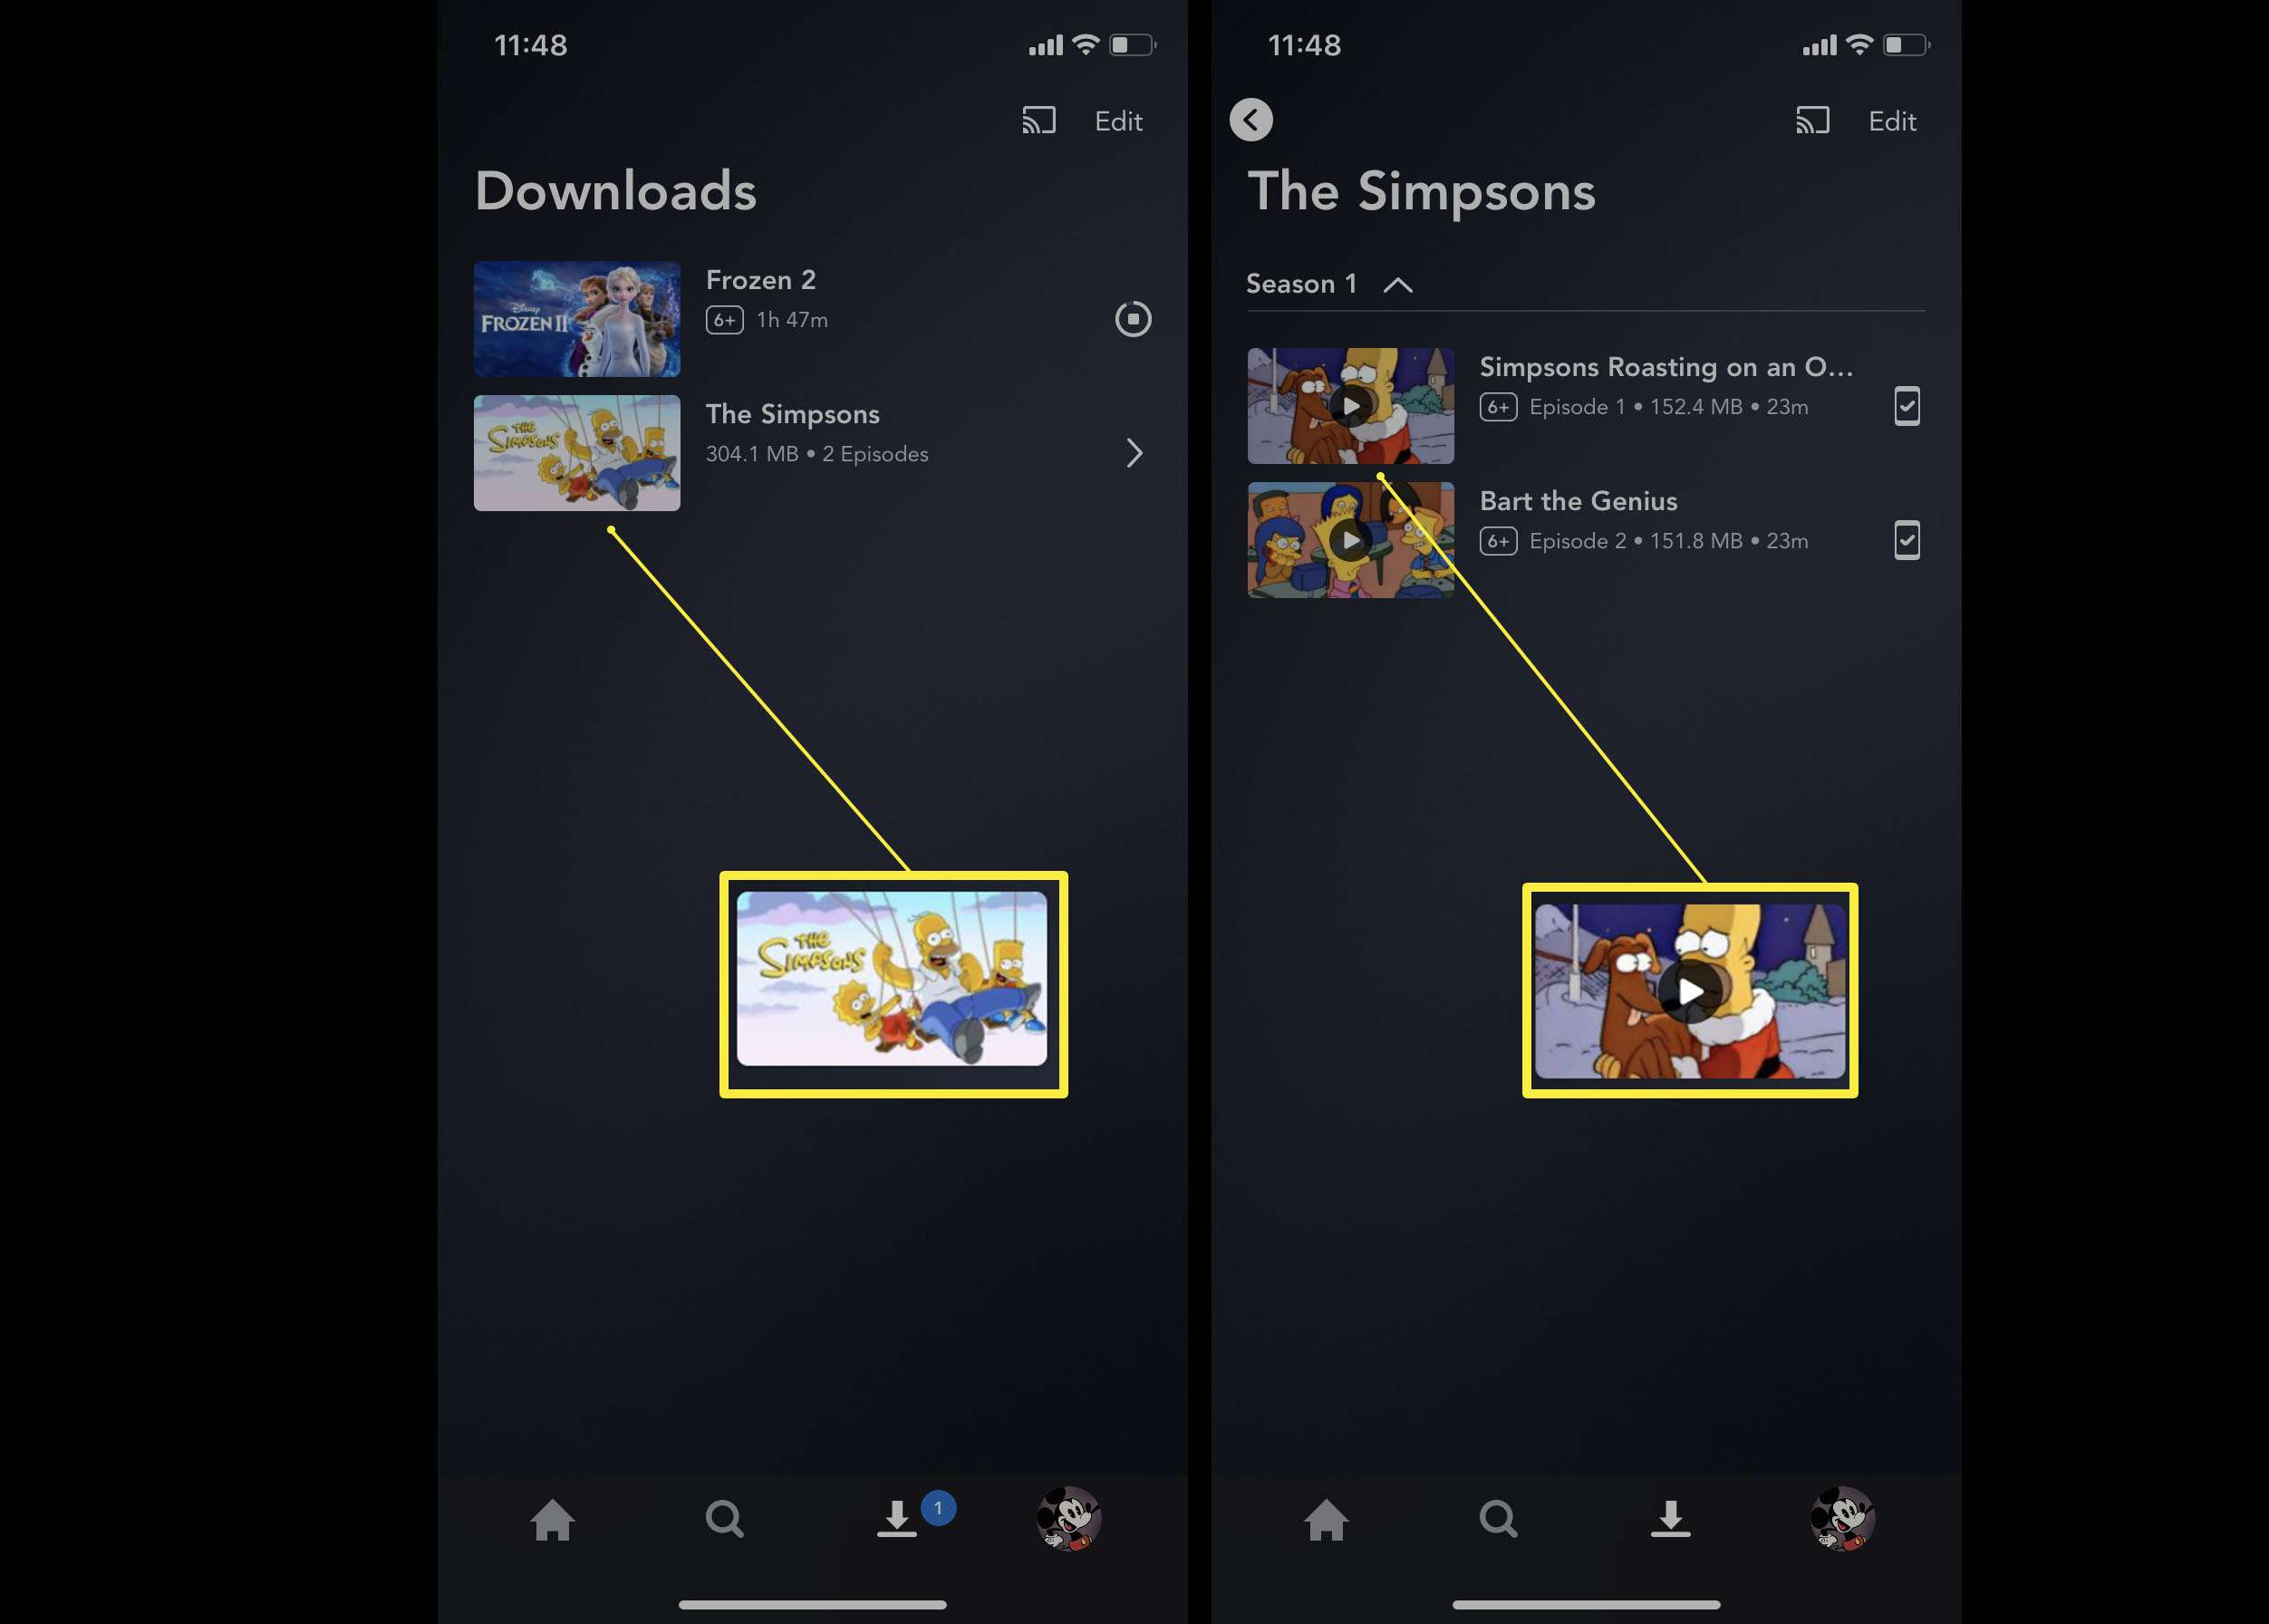 Steps needed in the Disney Plus app for watching a downloaded TV show